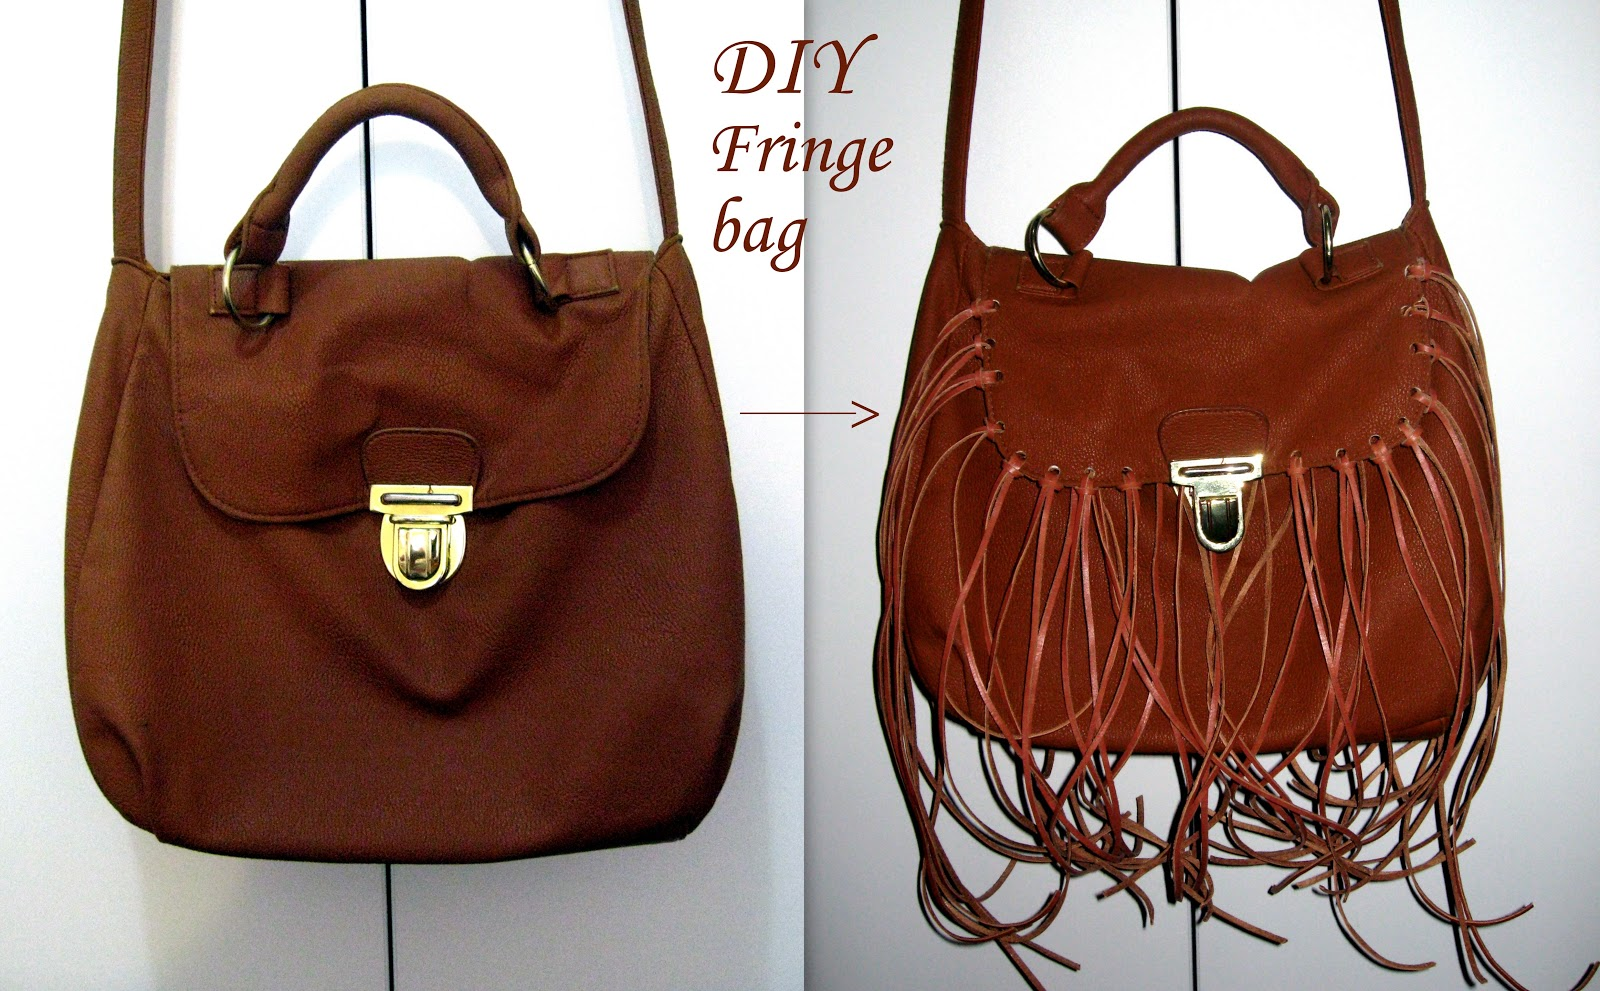 DIY, diy fringe bag, diy fringe cross body bag, leather cord craft lace in color cognac, how to make a fringe bag